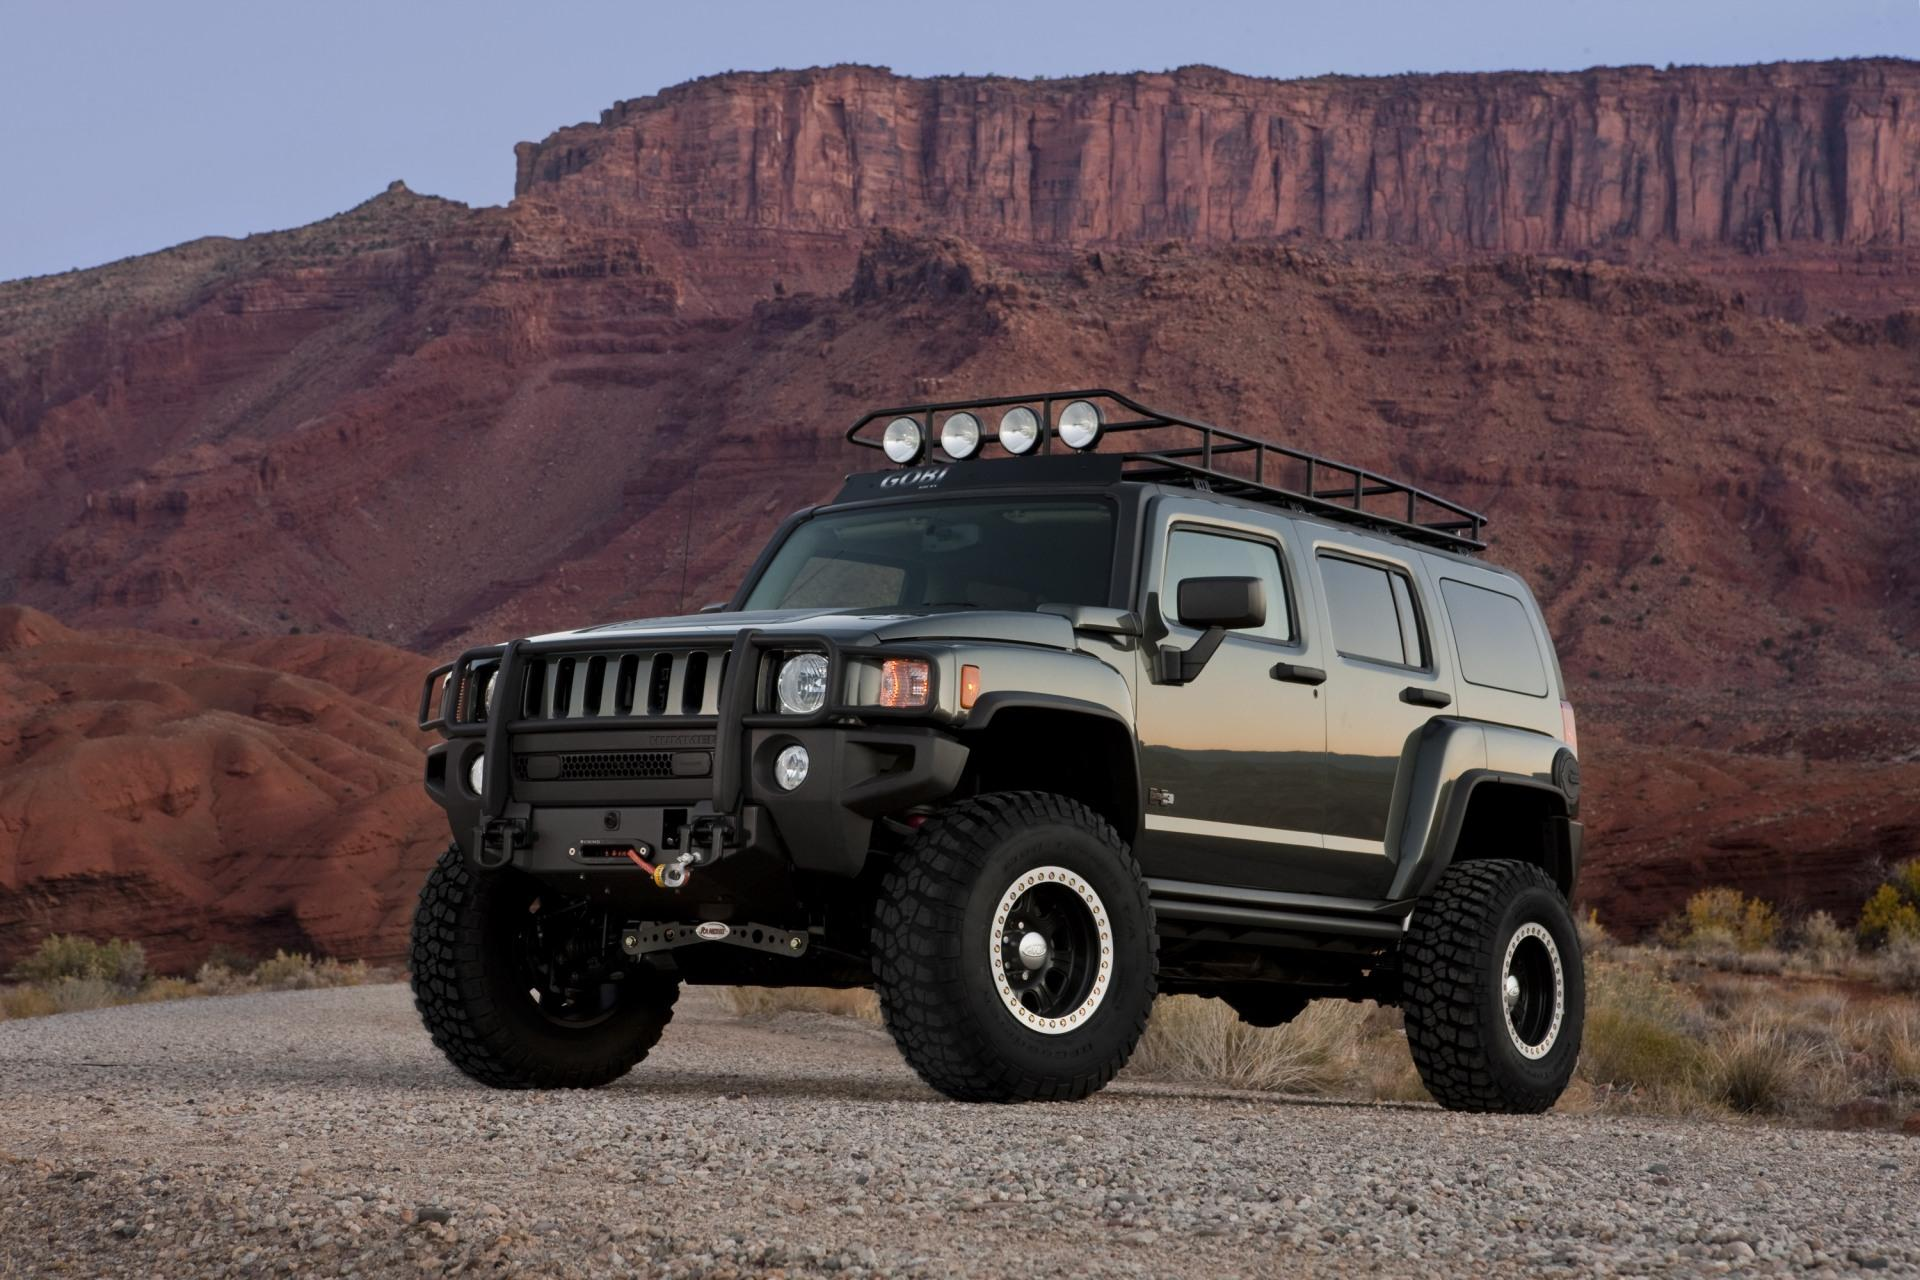 2010 Hummer H3 Moab News and Information | conceptcarz.com